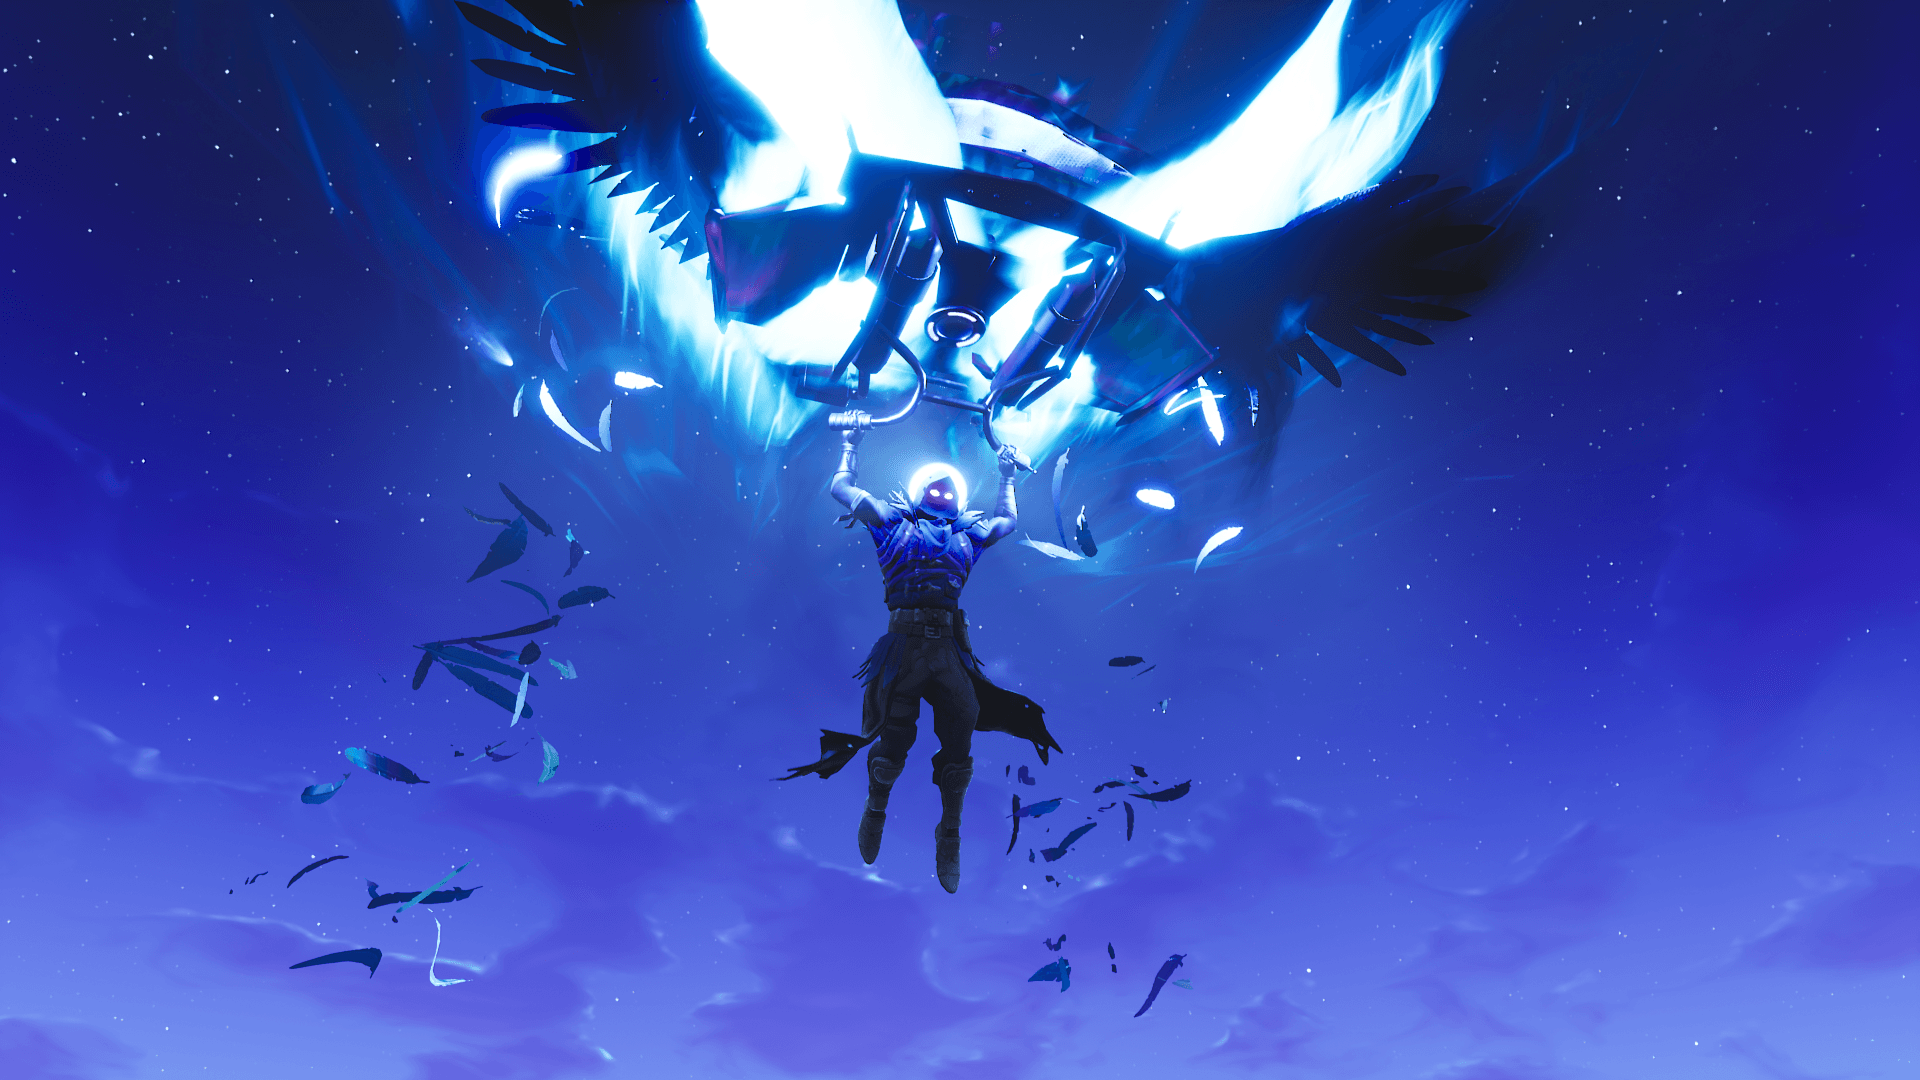 Fortnite Skin Wallpapers Top Free Fortnite Skin Backgrounds Wallpaperaccess